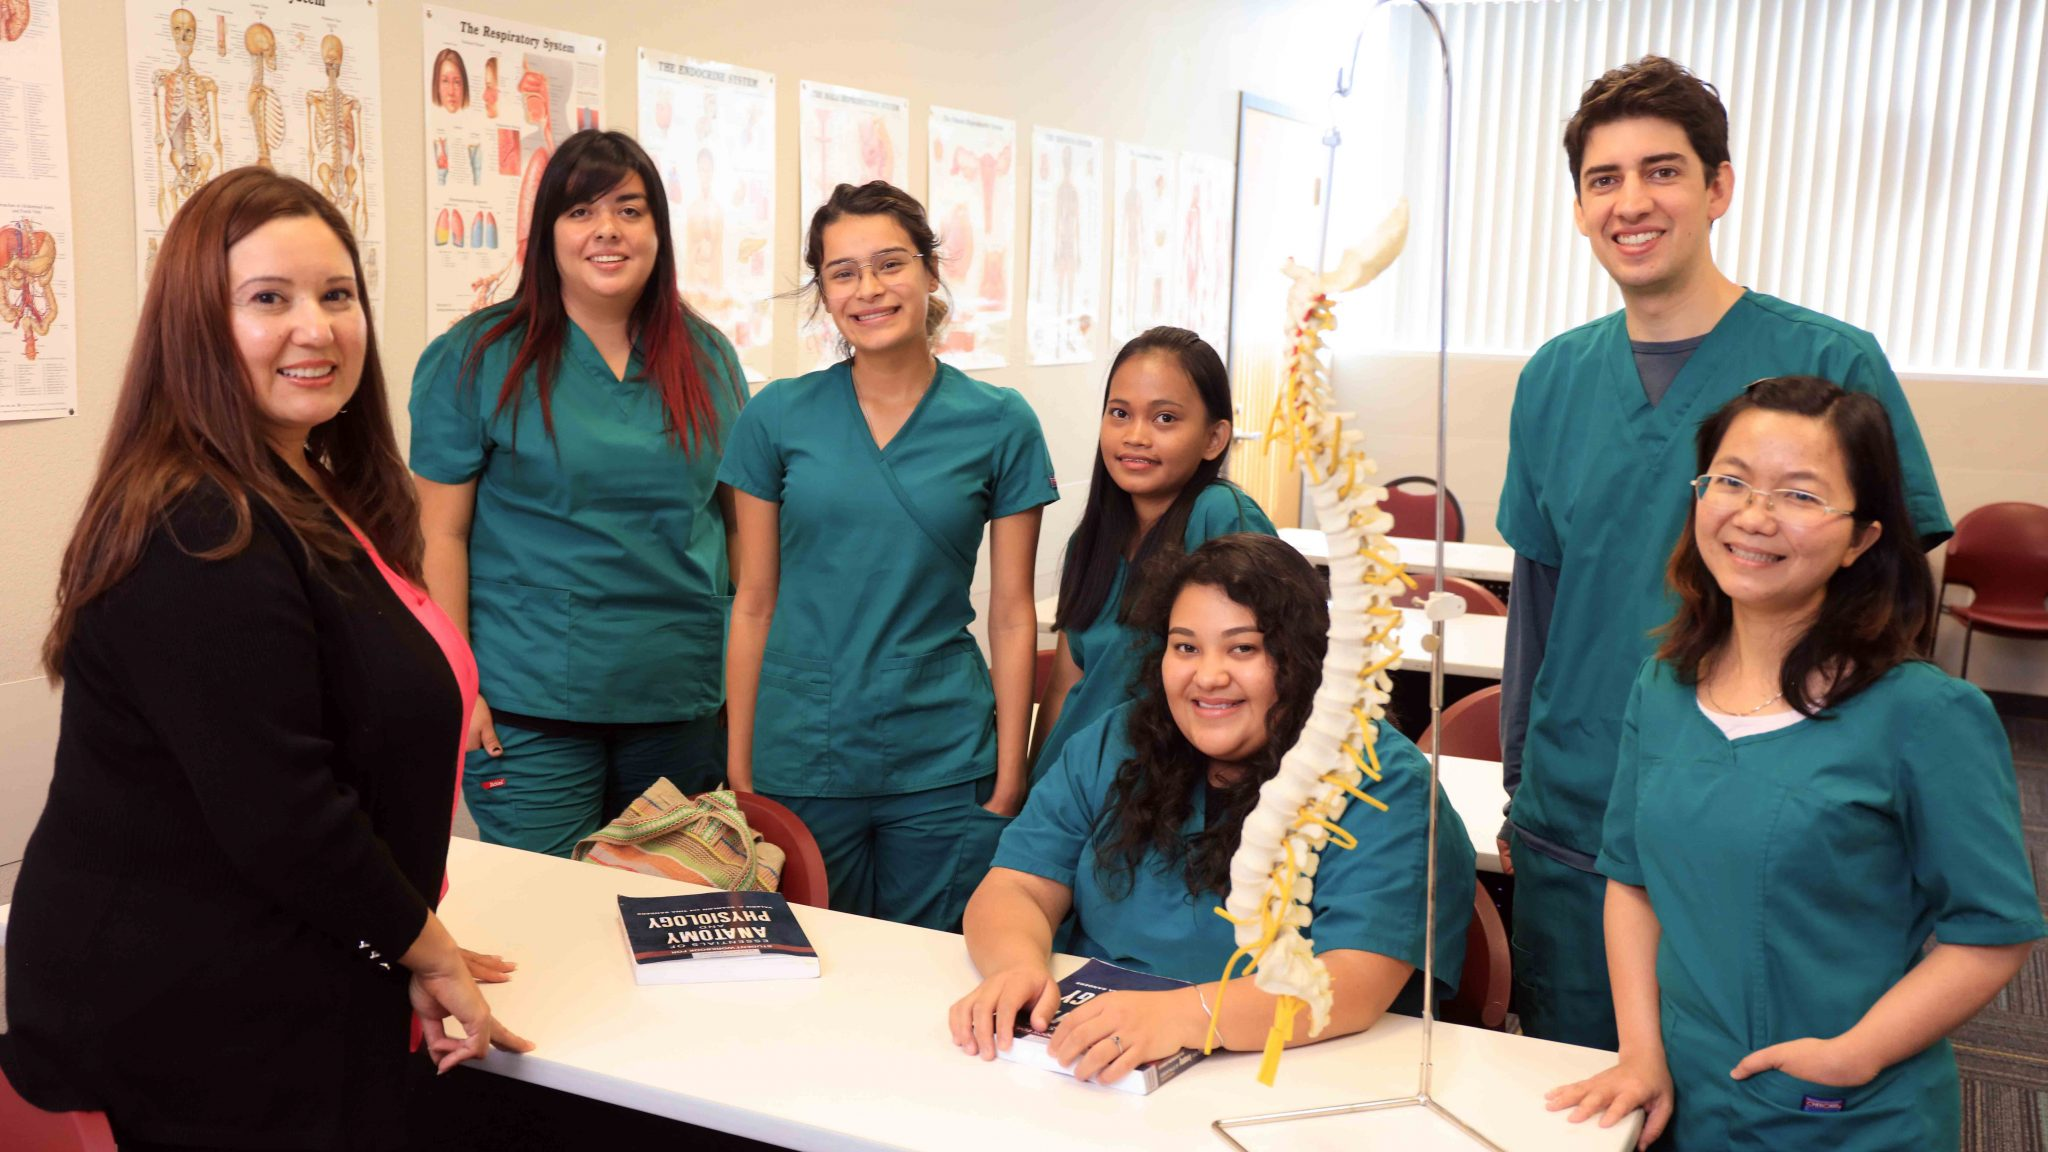 Five nursing students with an instructor in an anatomy classroom.